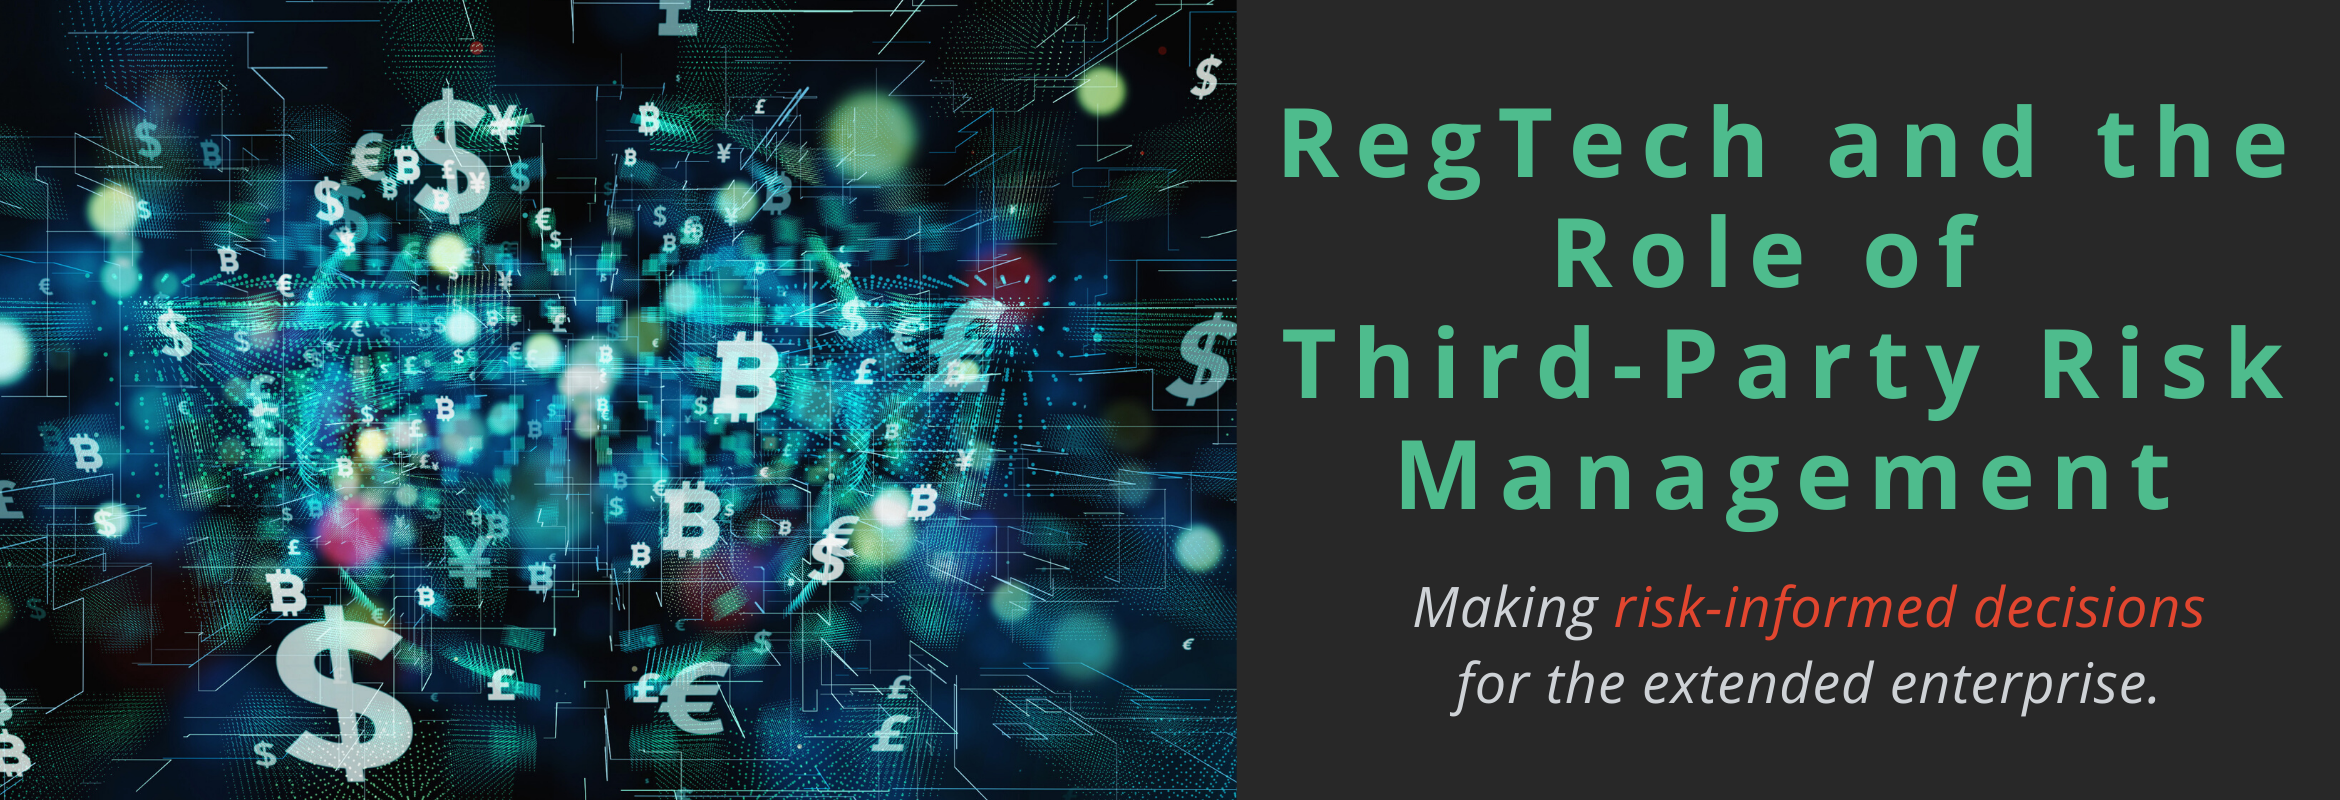 As risk and compliance management professionals look to RegTech companies to assist with their legal, regulatory and compliance mandate, it's important to have a solid third-party risk management program in place to make risk-informed decisions for the extended enterprise.